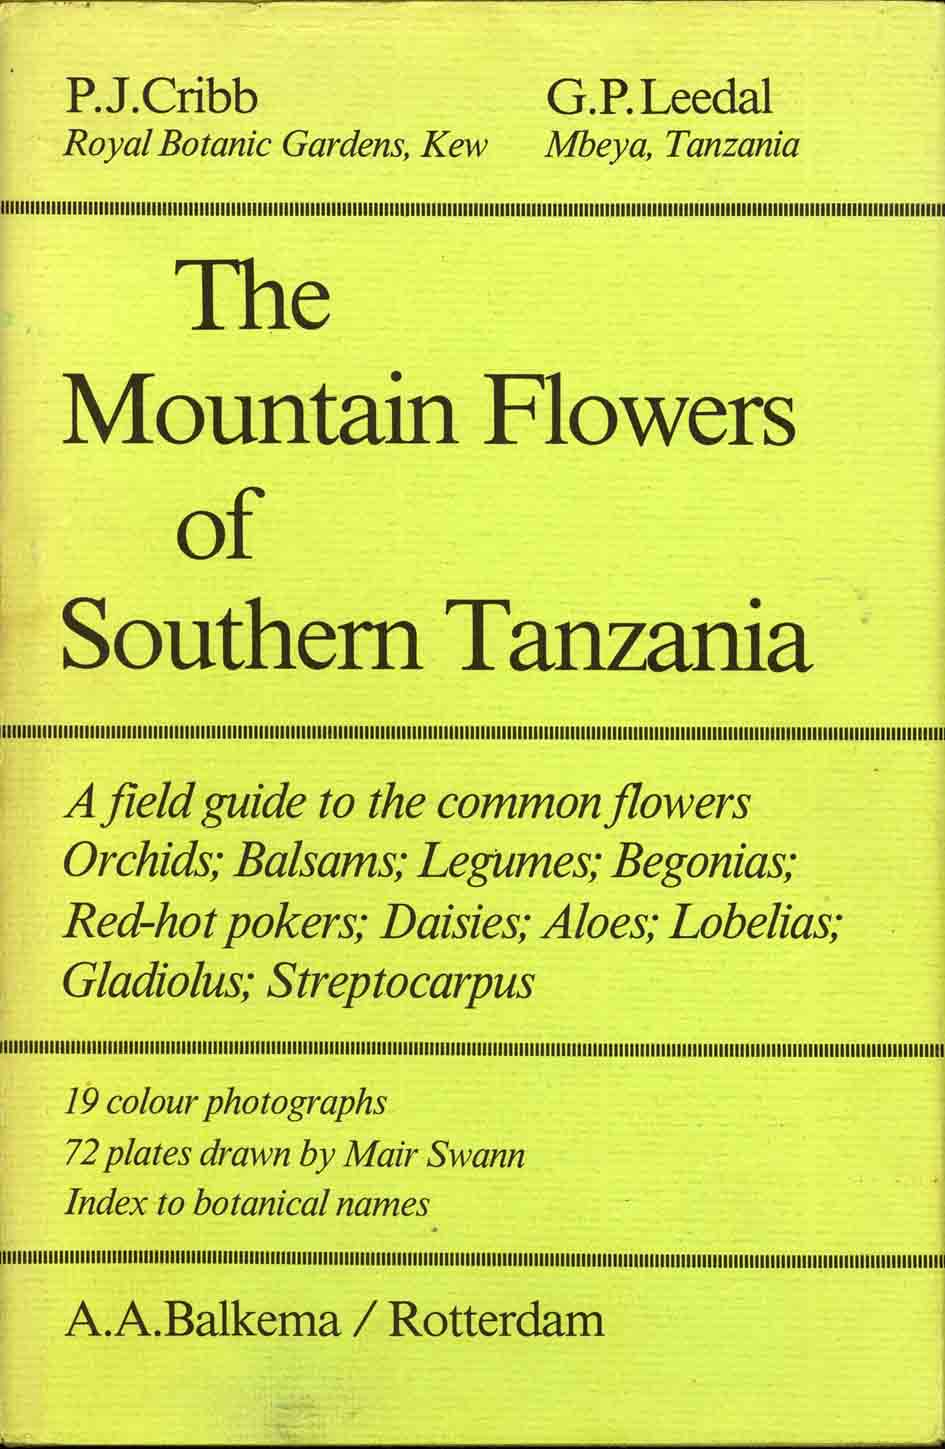 east african notes and records father phil geologist botanist